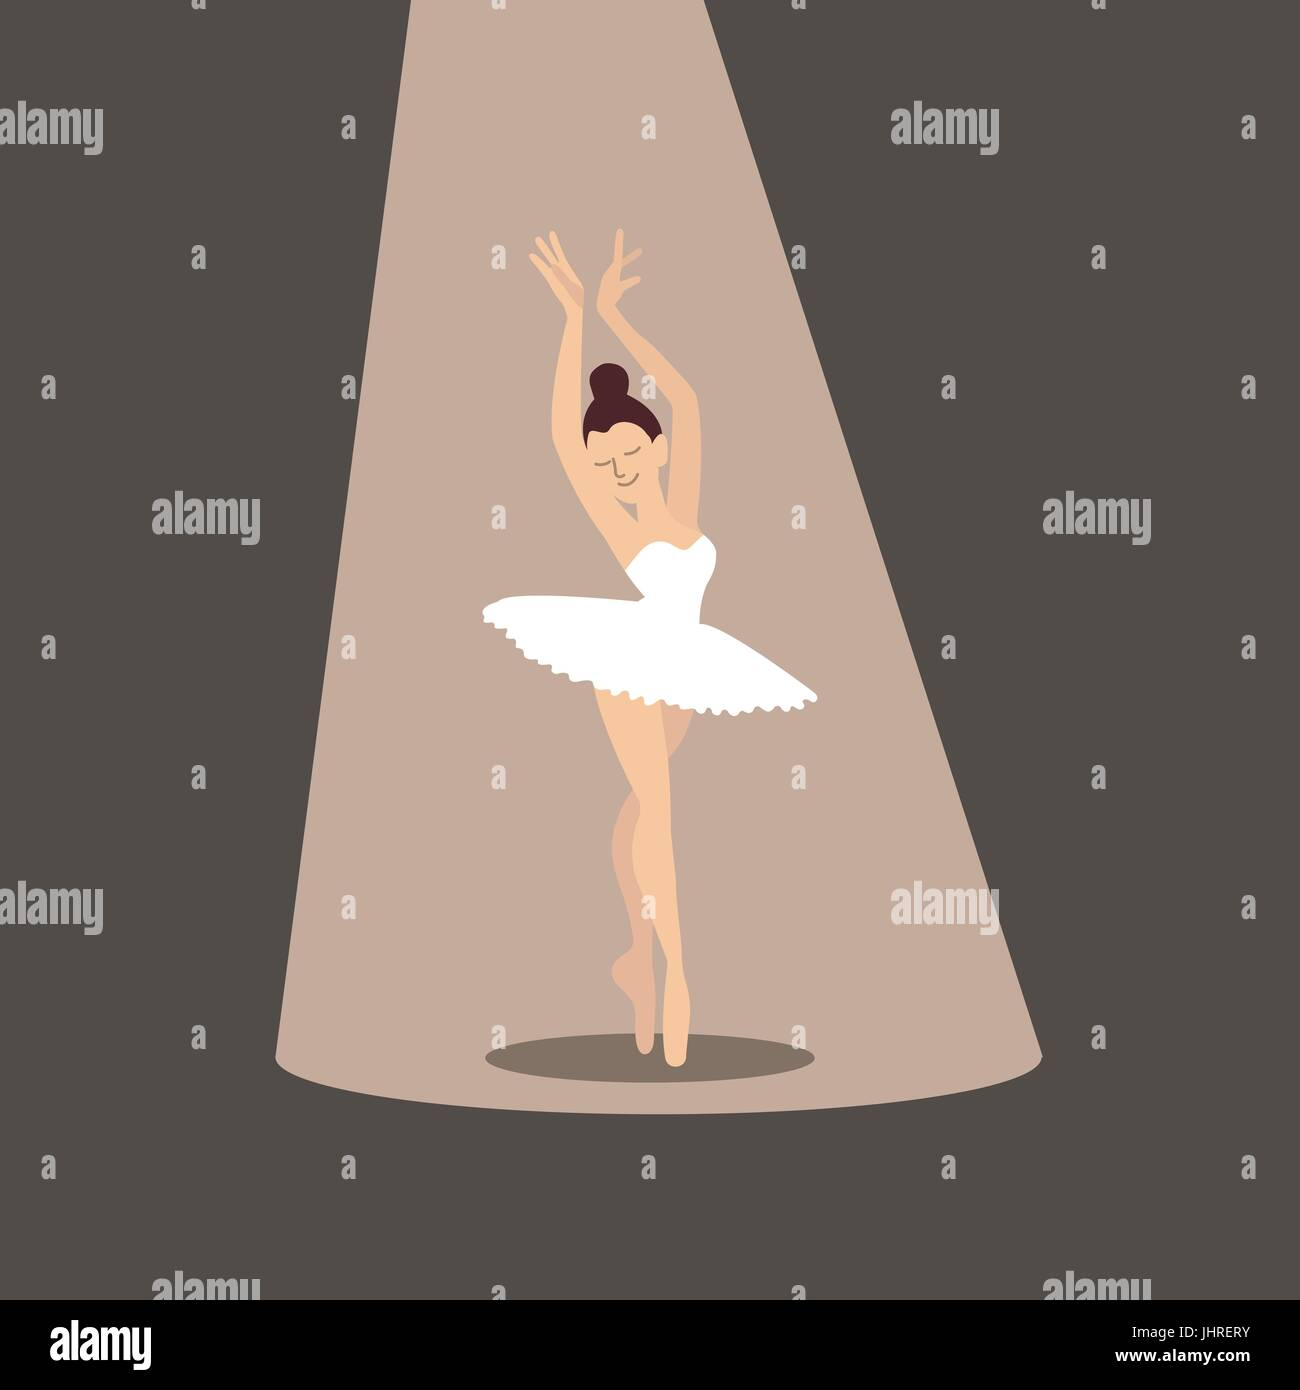 Ballerina icon. - Stock Vector